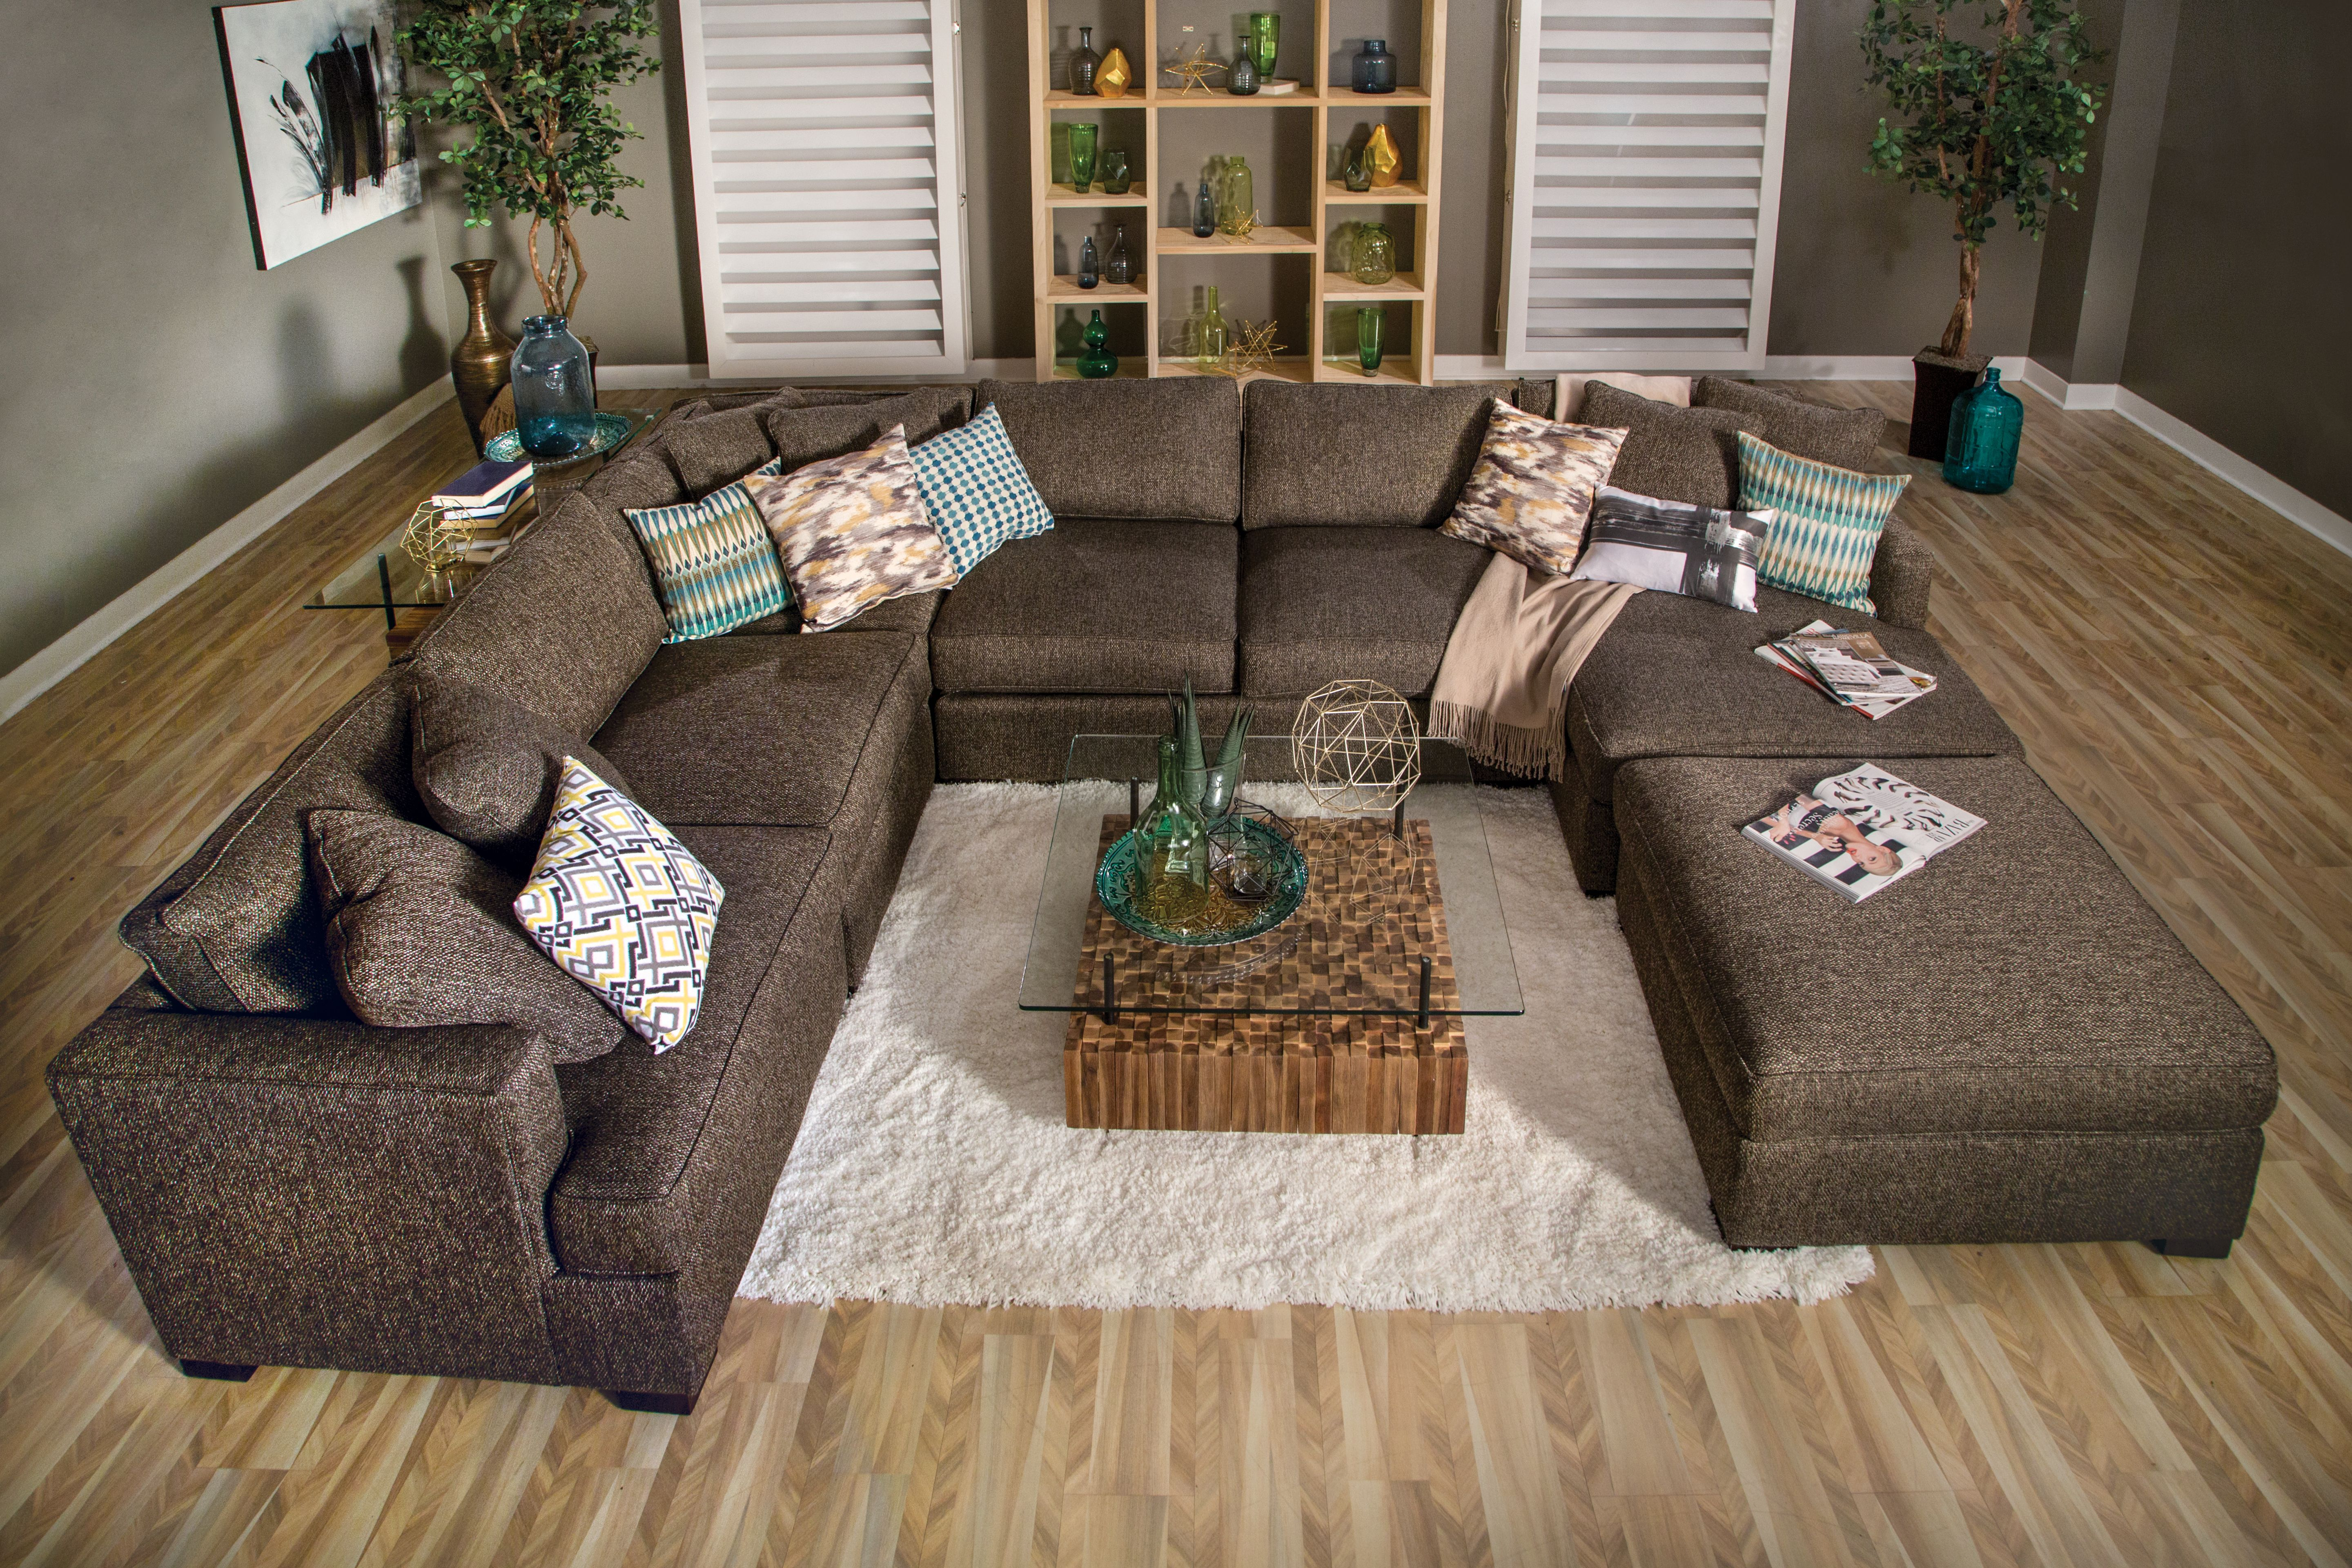 Pin by Nebraska Furniture Mart on Upgrade Your Home